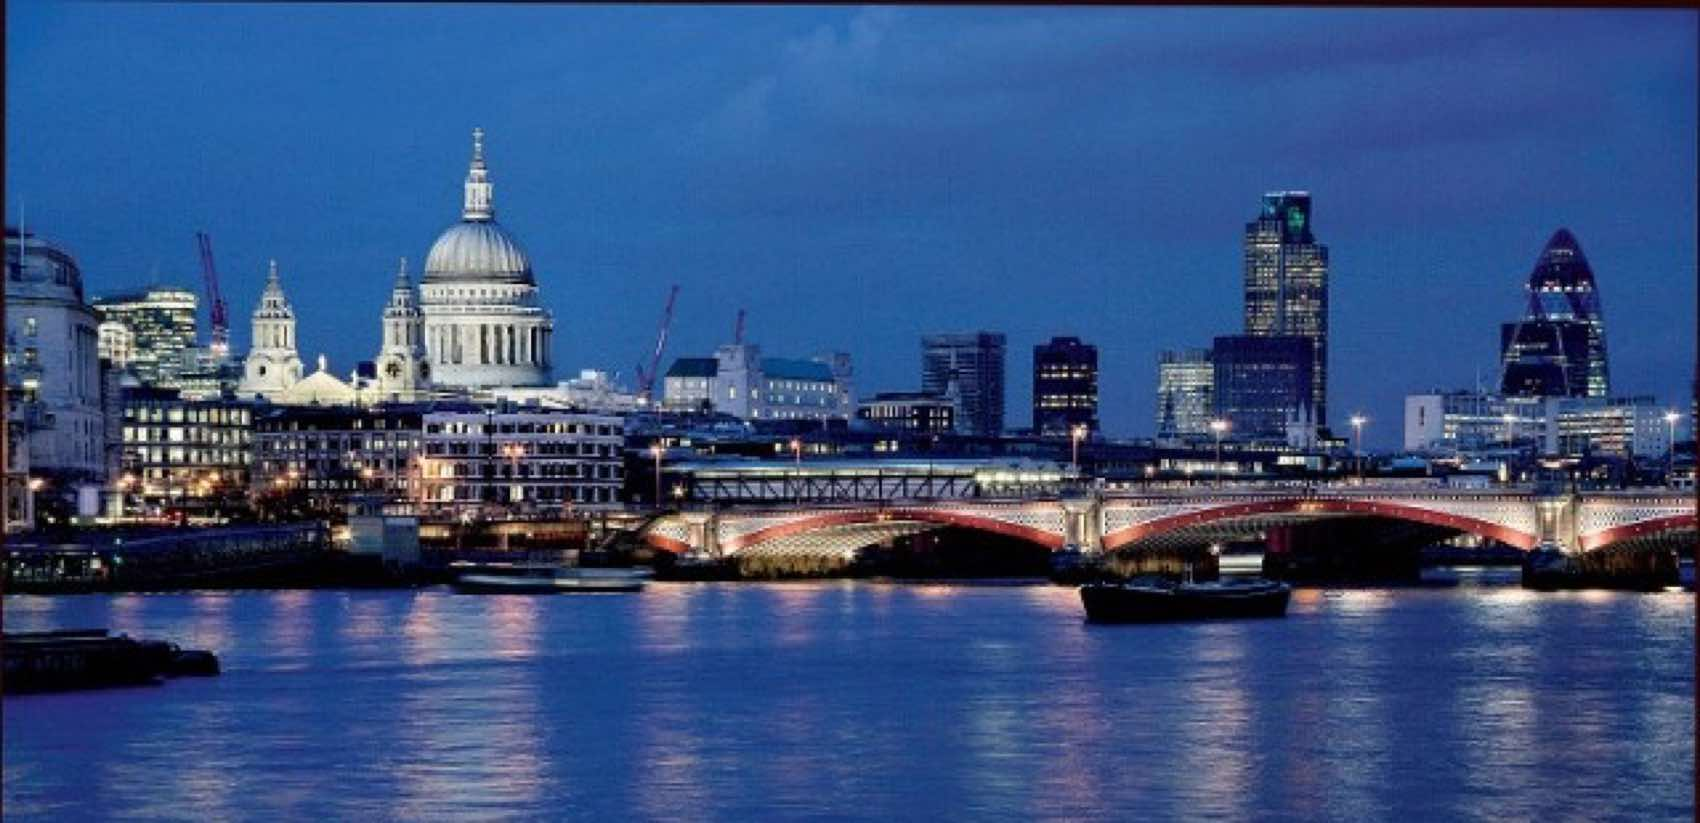 St Paul's, with its world-famous dome, is an iconic feature of the London skyline.